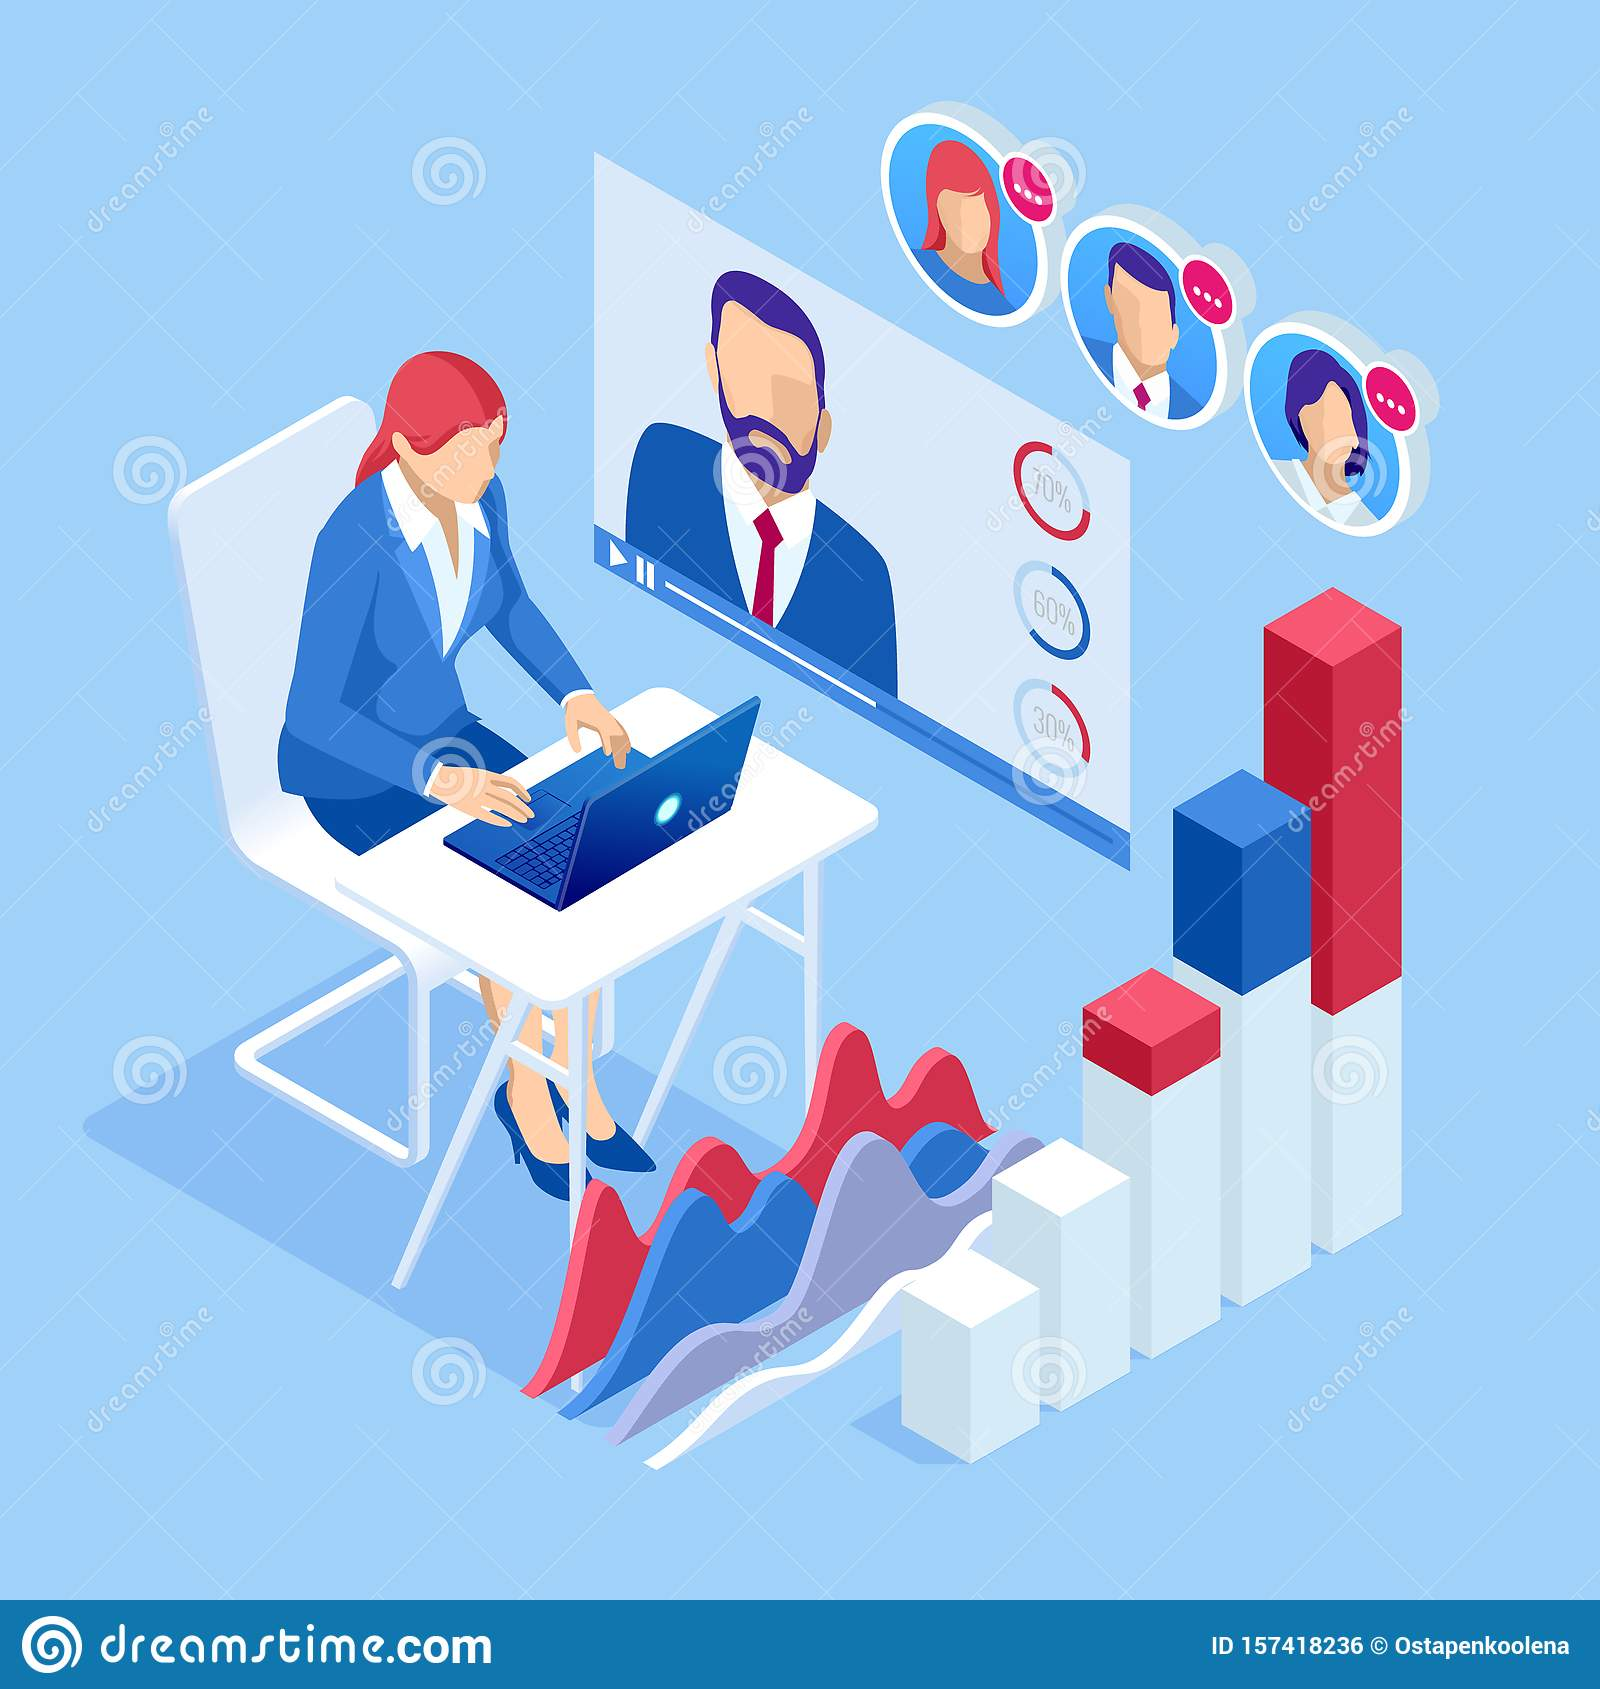 buy online business training company